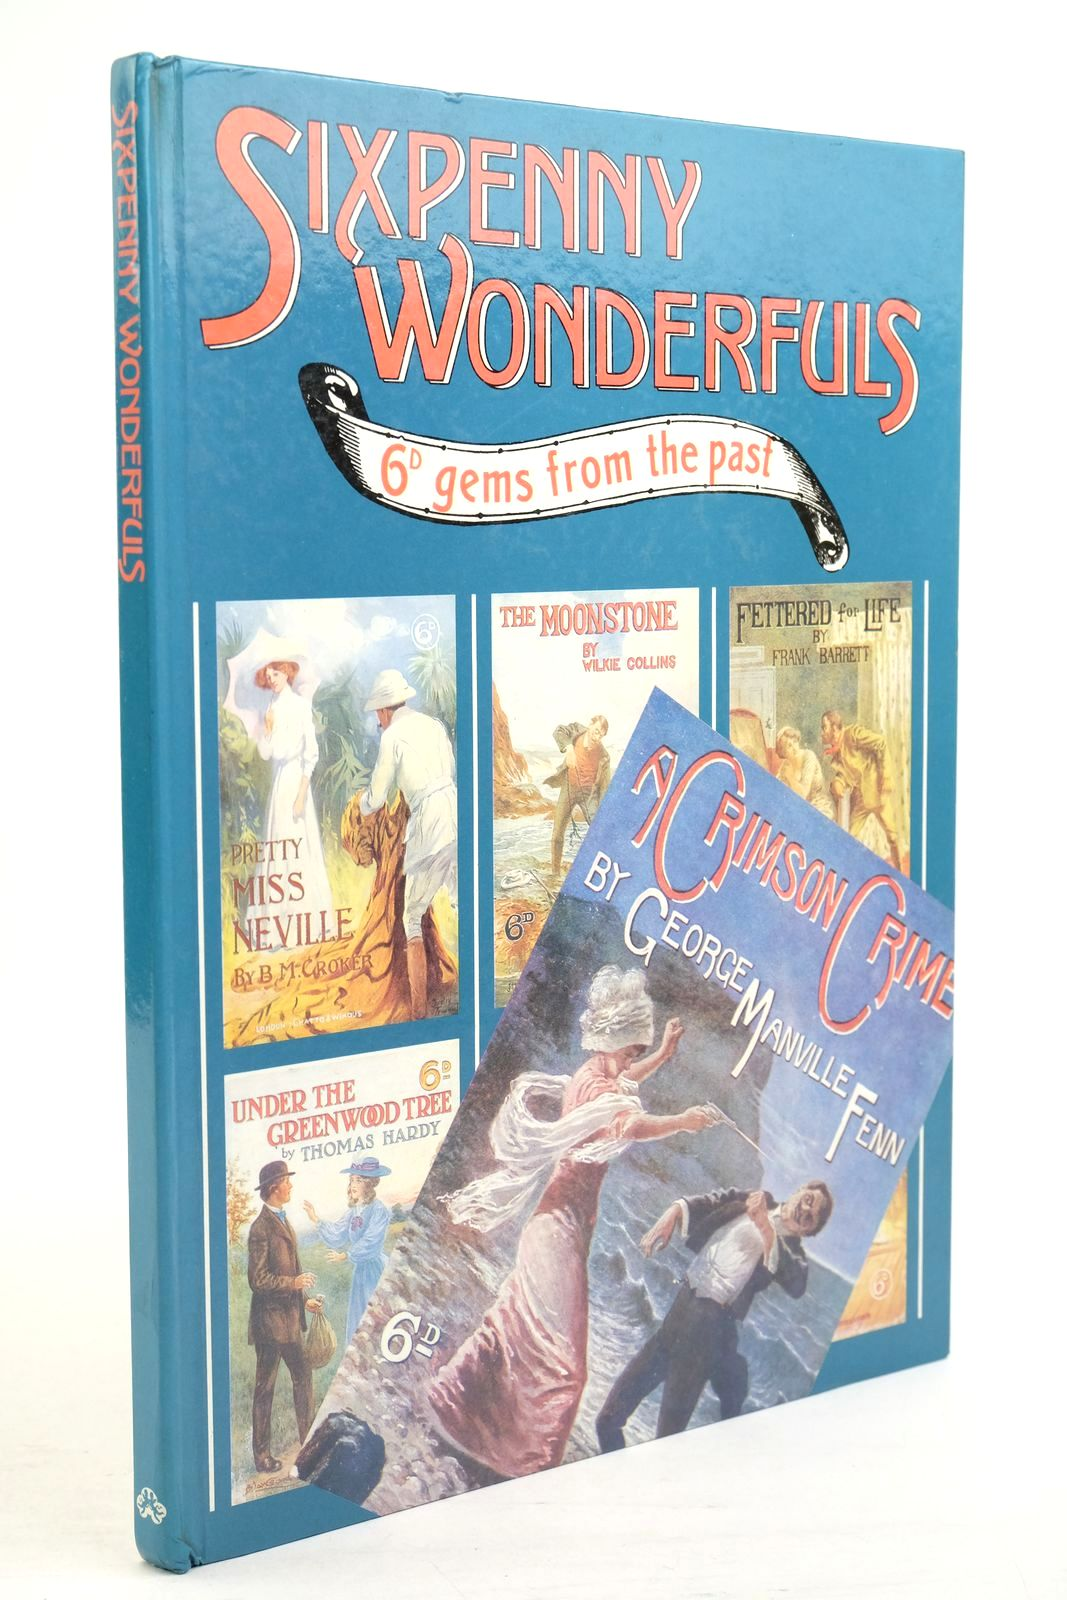 Photo of SIXPENNY WONDERFULS 6D GEMS FROM THE PAST published by Chatto & Windus, The Hogarth Press (STOCK CODE: 1320956)  for sale by Stella & Rose's Books